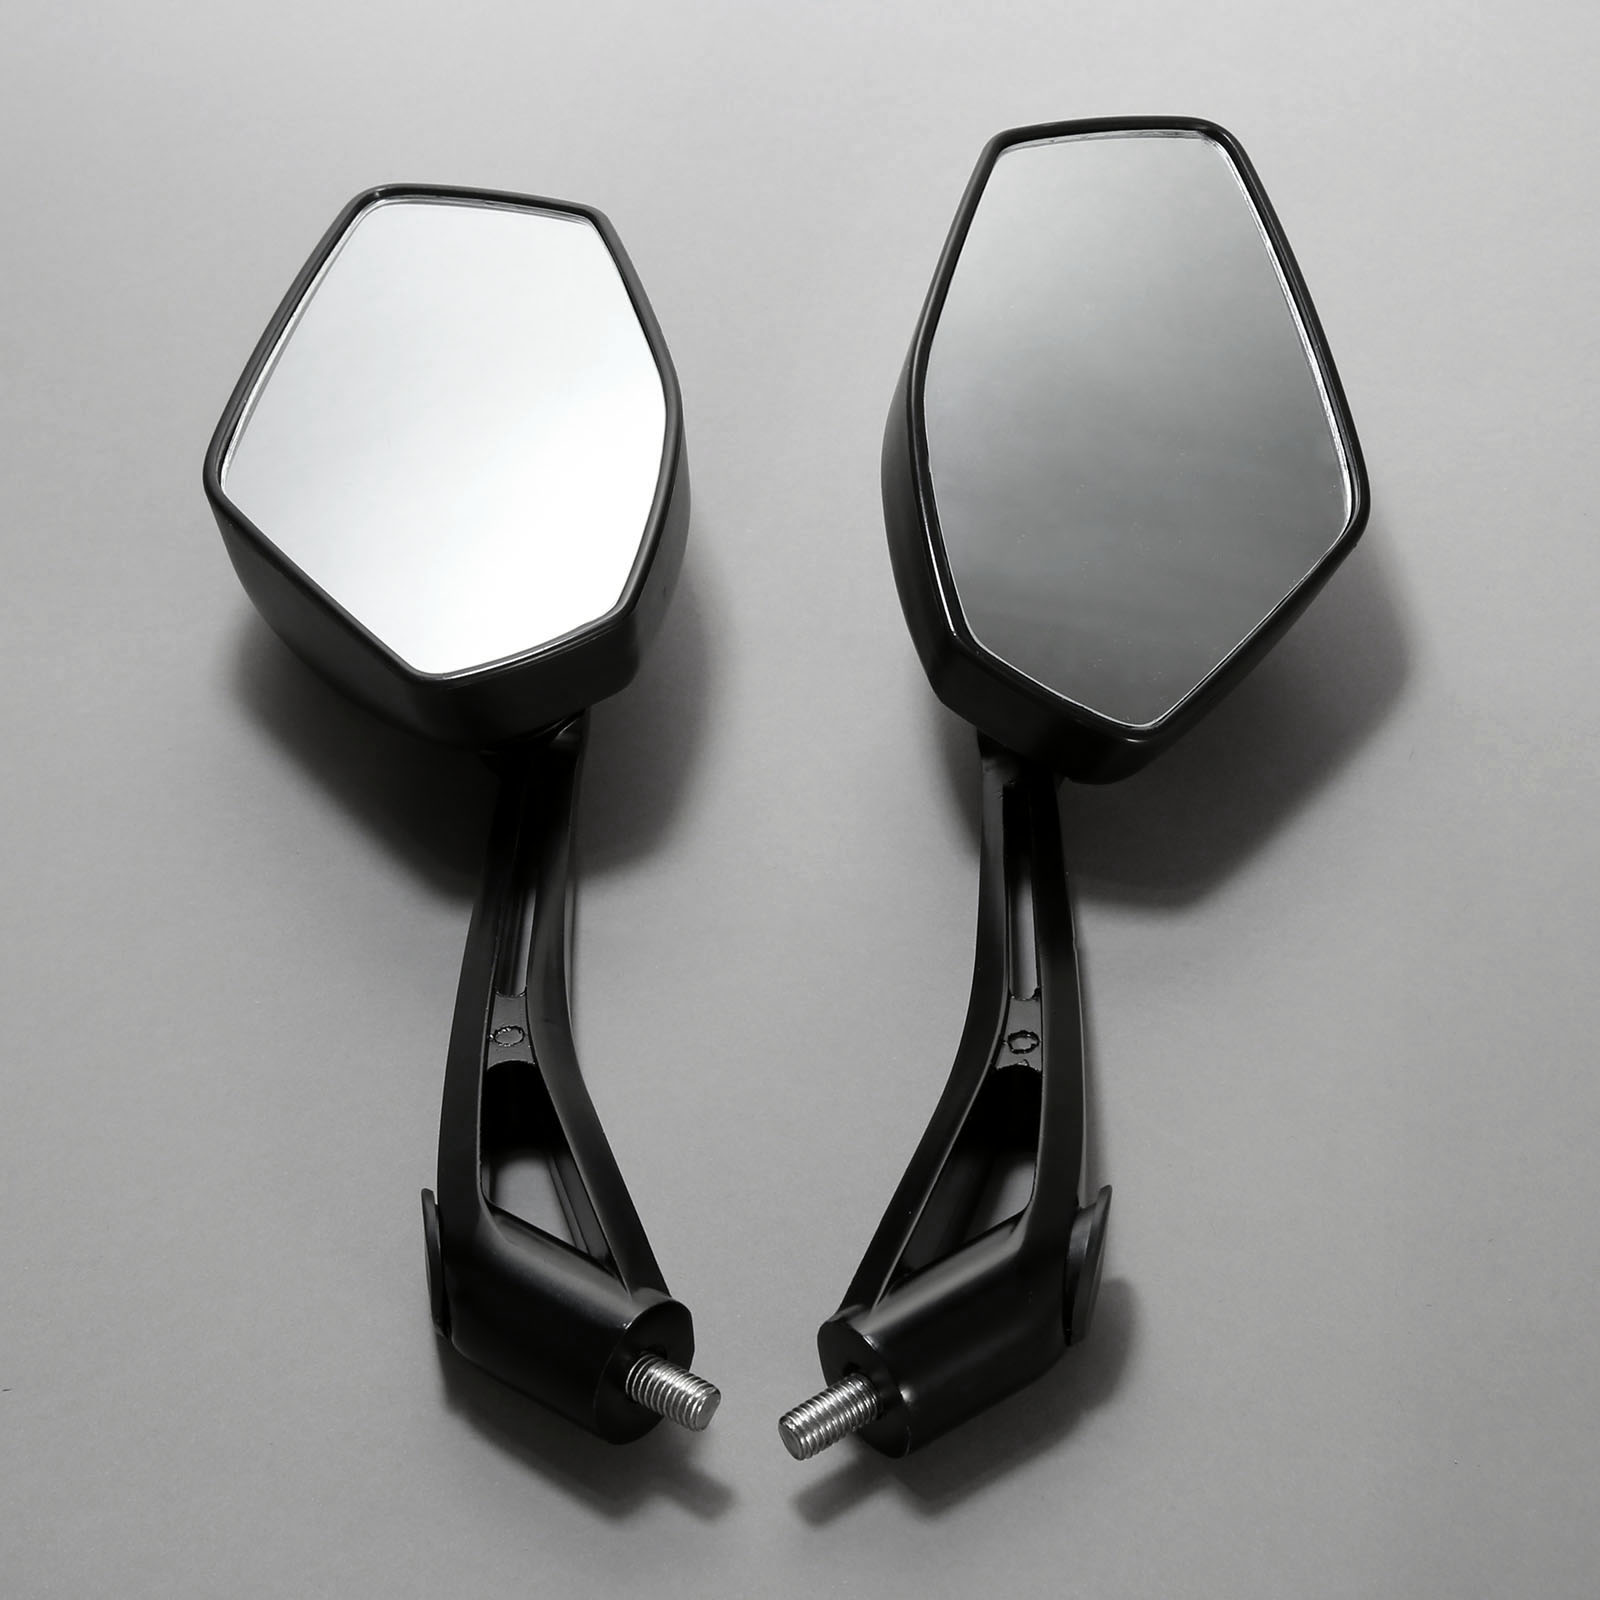 2Pcs Pair Motorcycle Mirror Scooter E Bike Rearview Mirrors Electrombile Back Side Convex Mirror 8mm 10mm Carbon Fiber in Mirror Covers from Automobiles Motorcycles